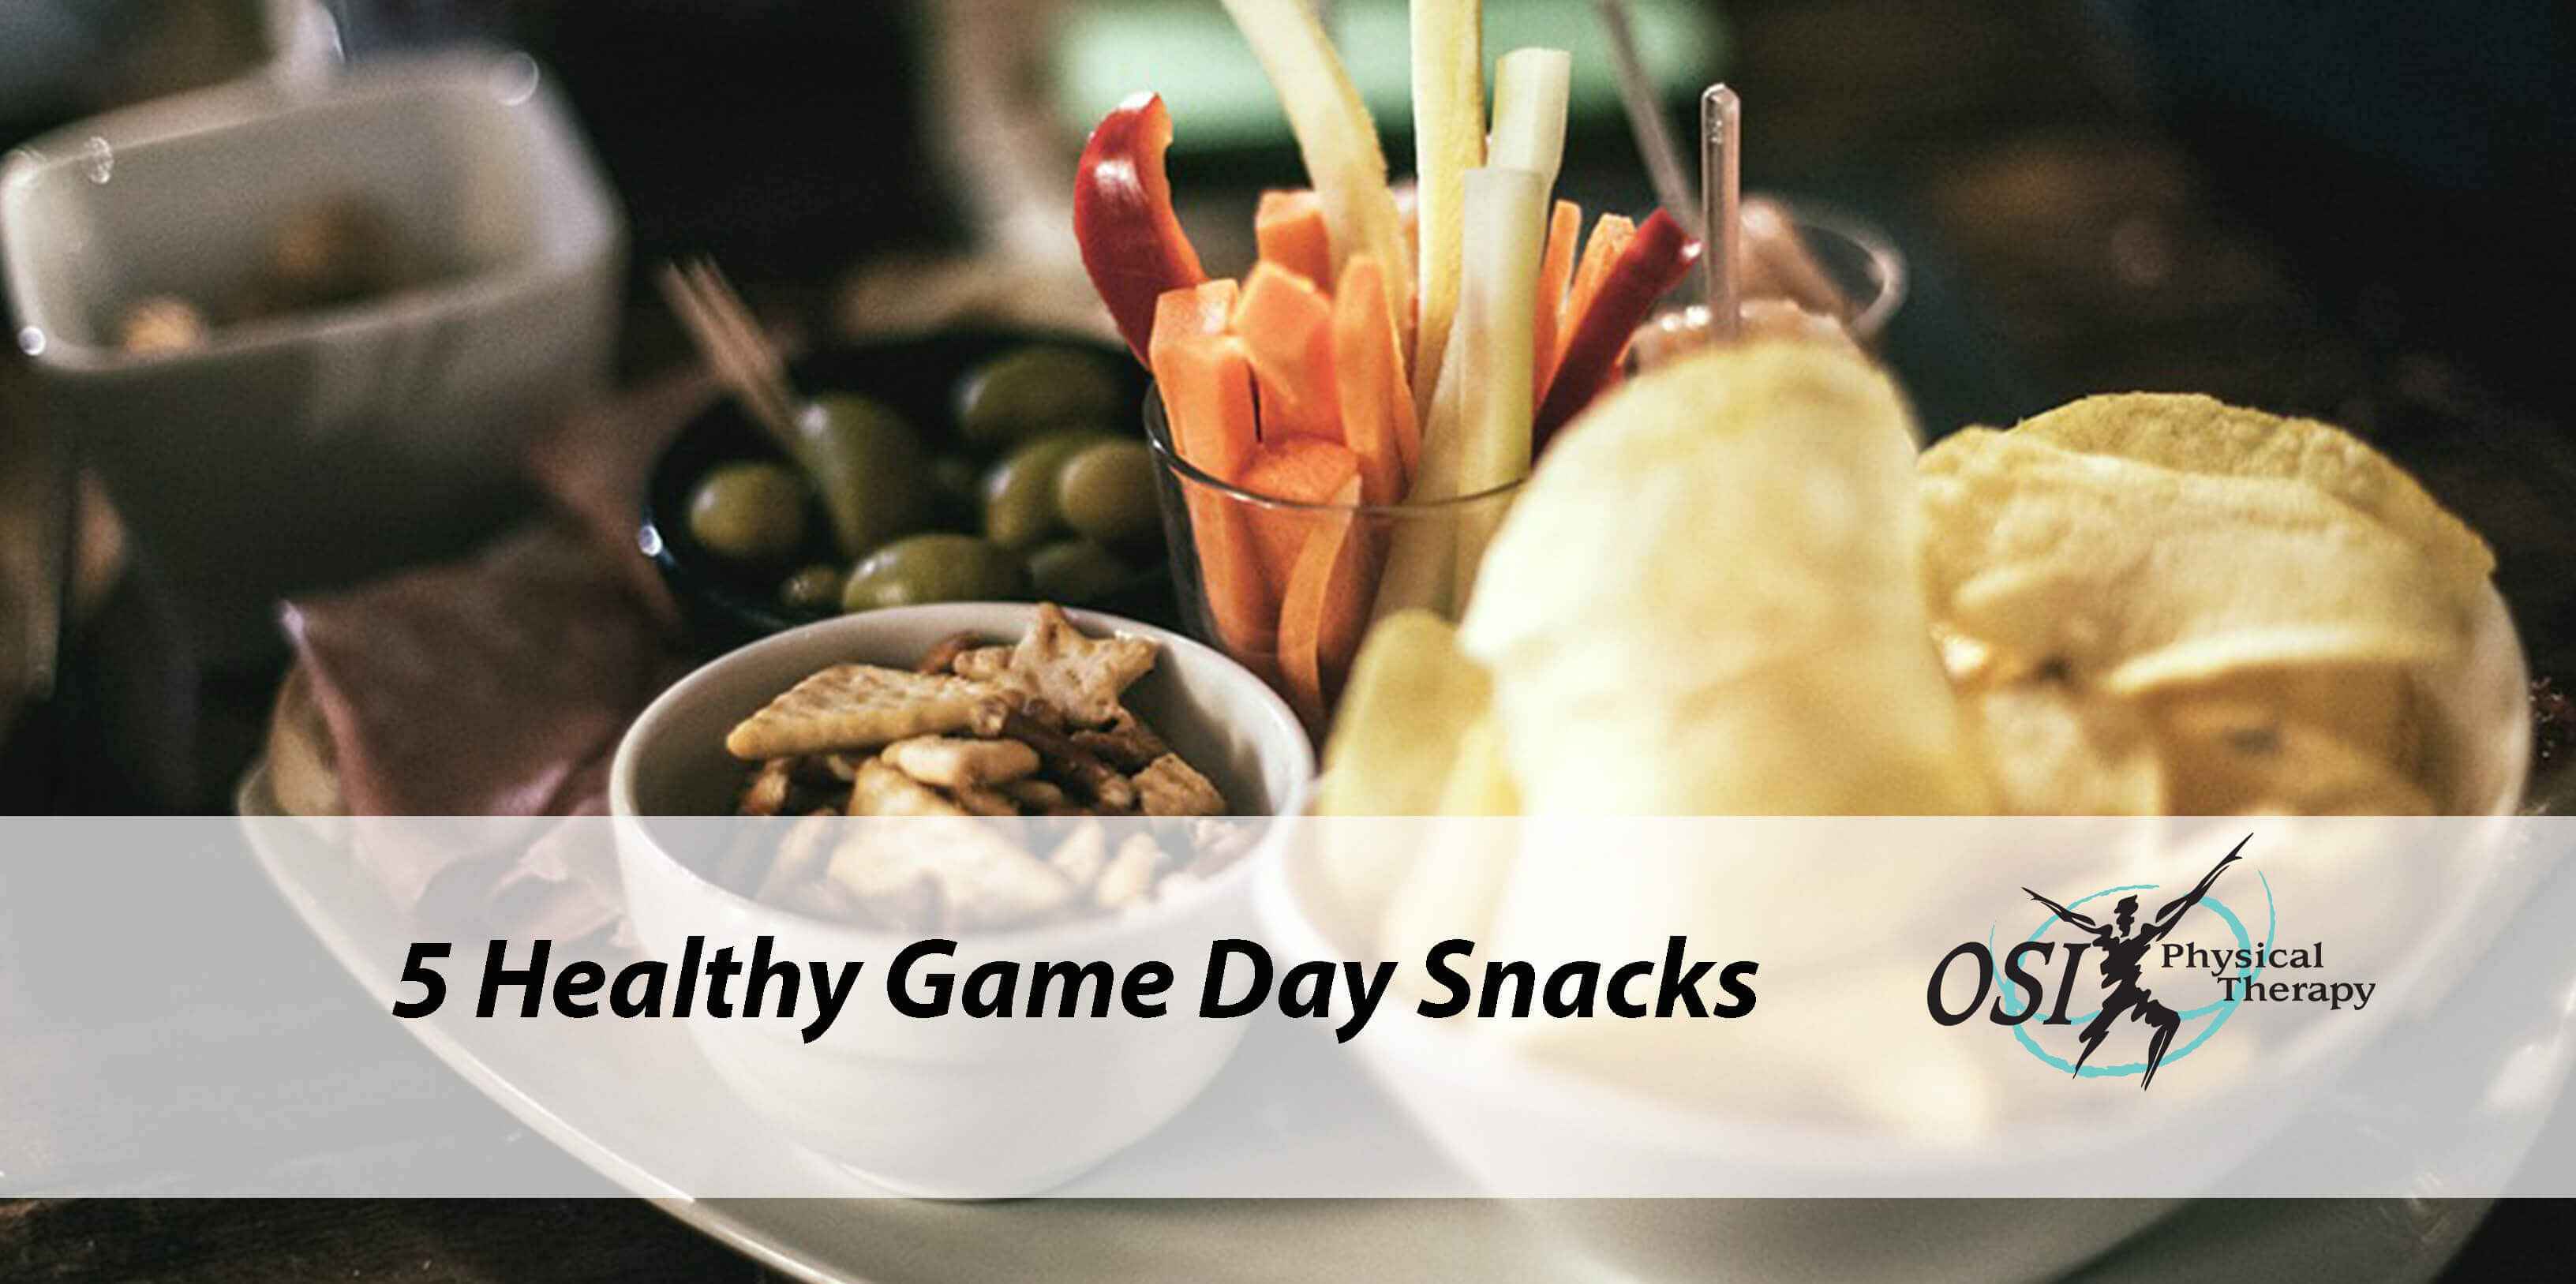 Healthy Game Day Snacks  5 Healthy Game Day Snacks for a Winning Sunday